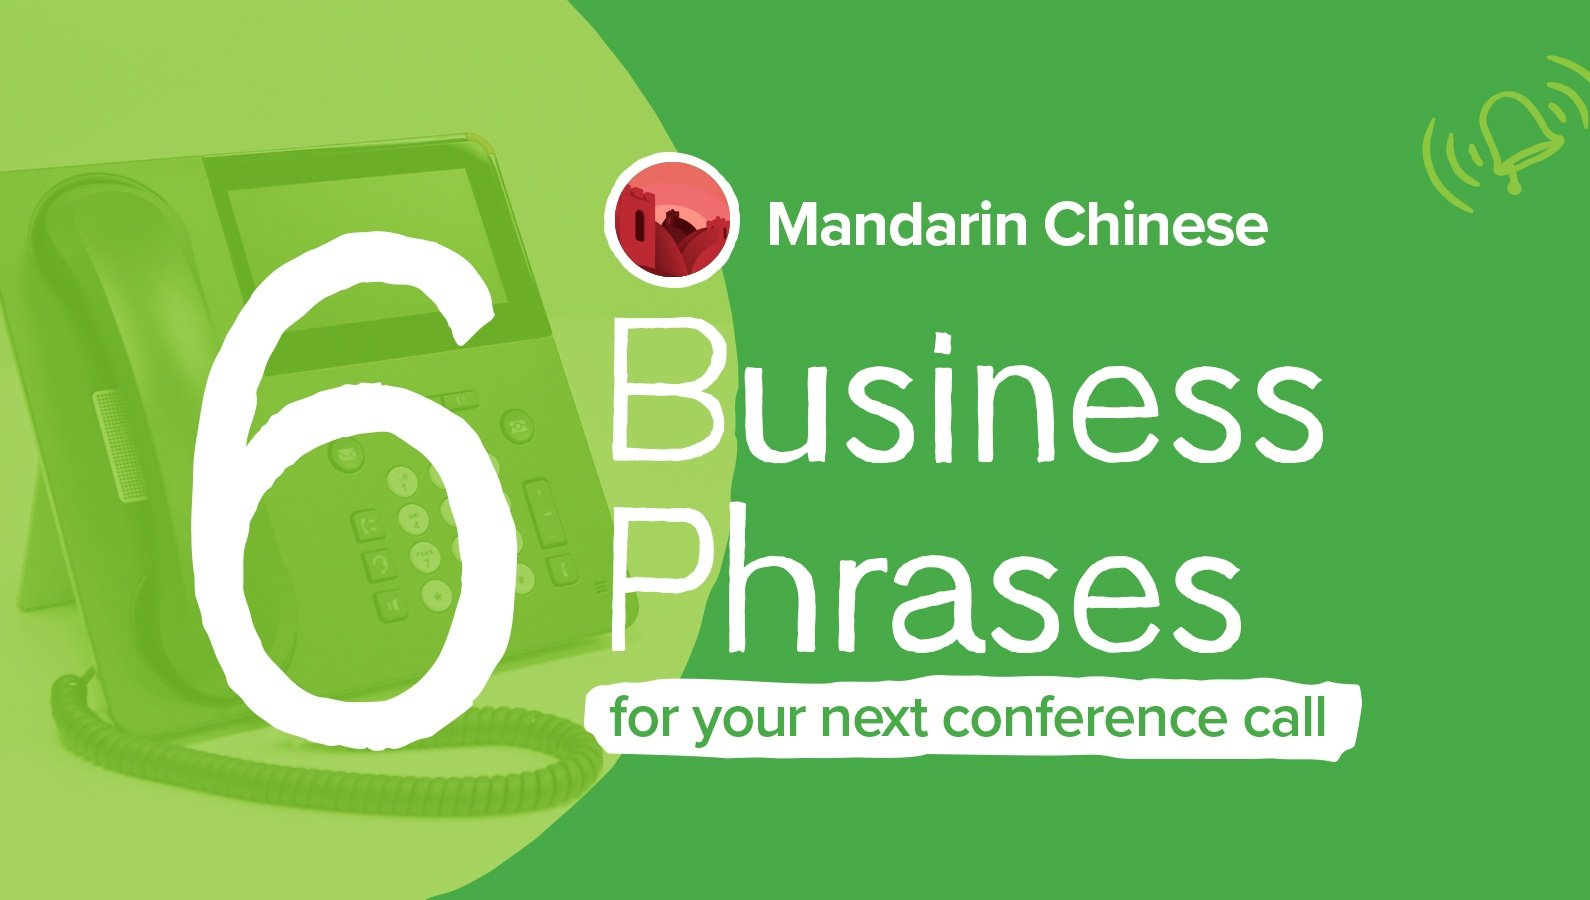 Six Mandarin Chinese Business Phrases for Your Next Conference Call